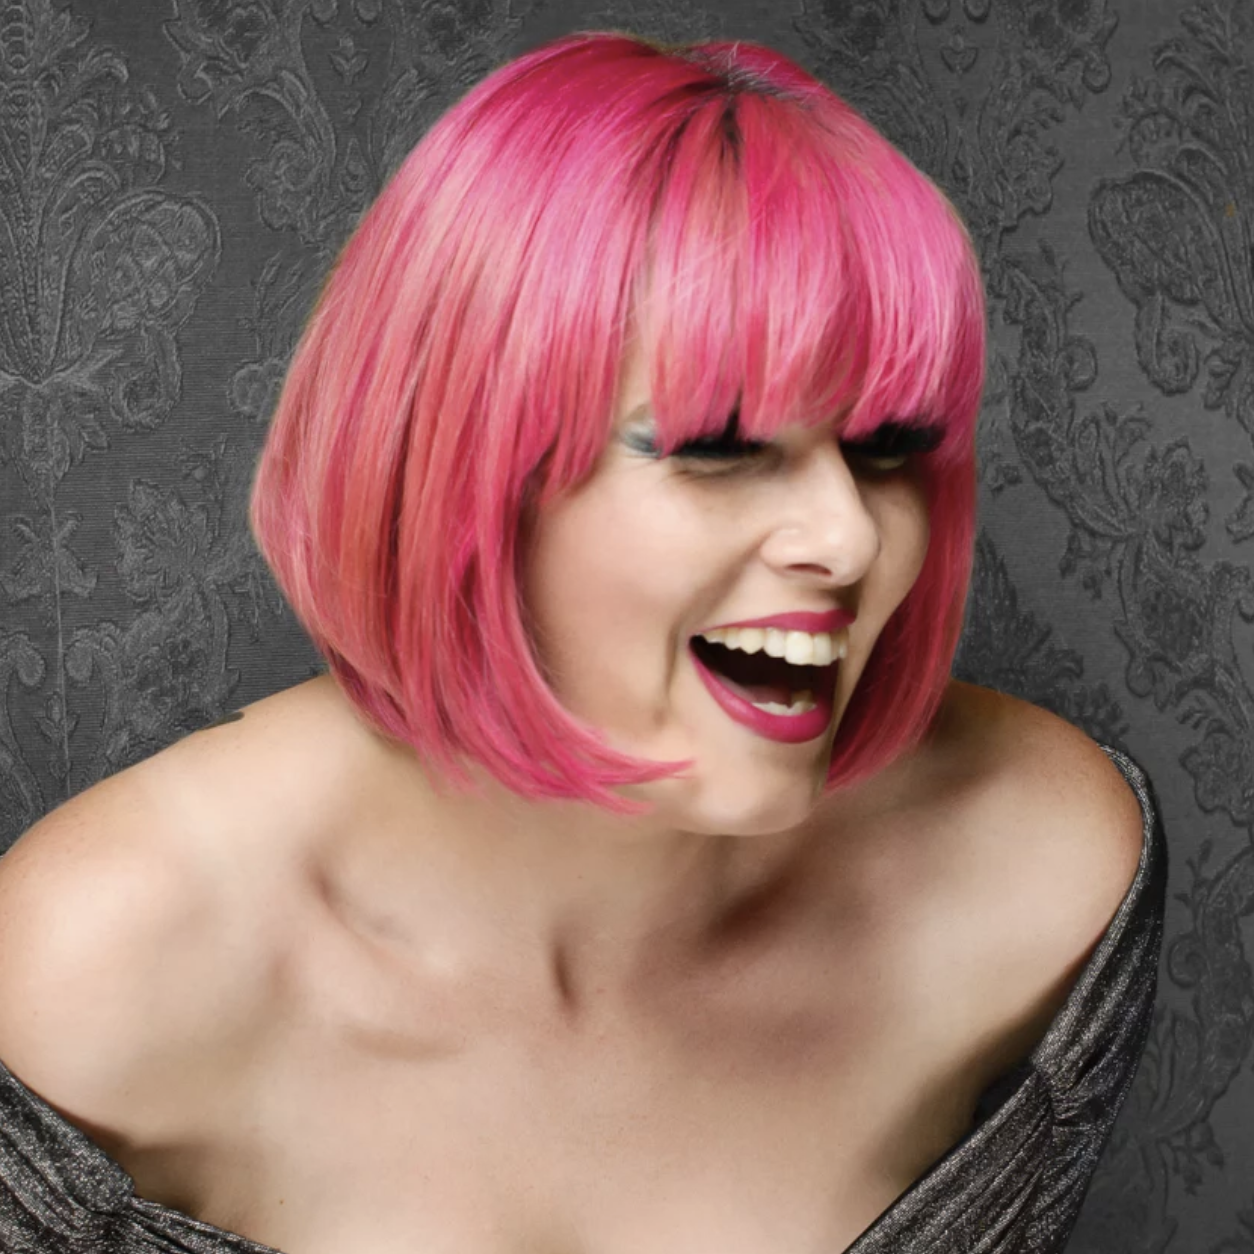 A young white woman with a hot pink bob cut, laughing